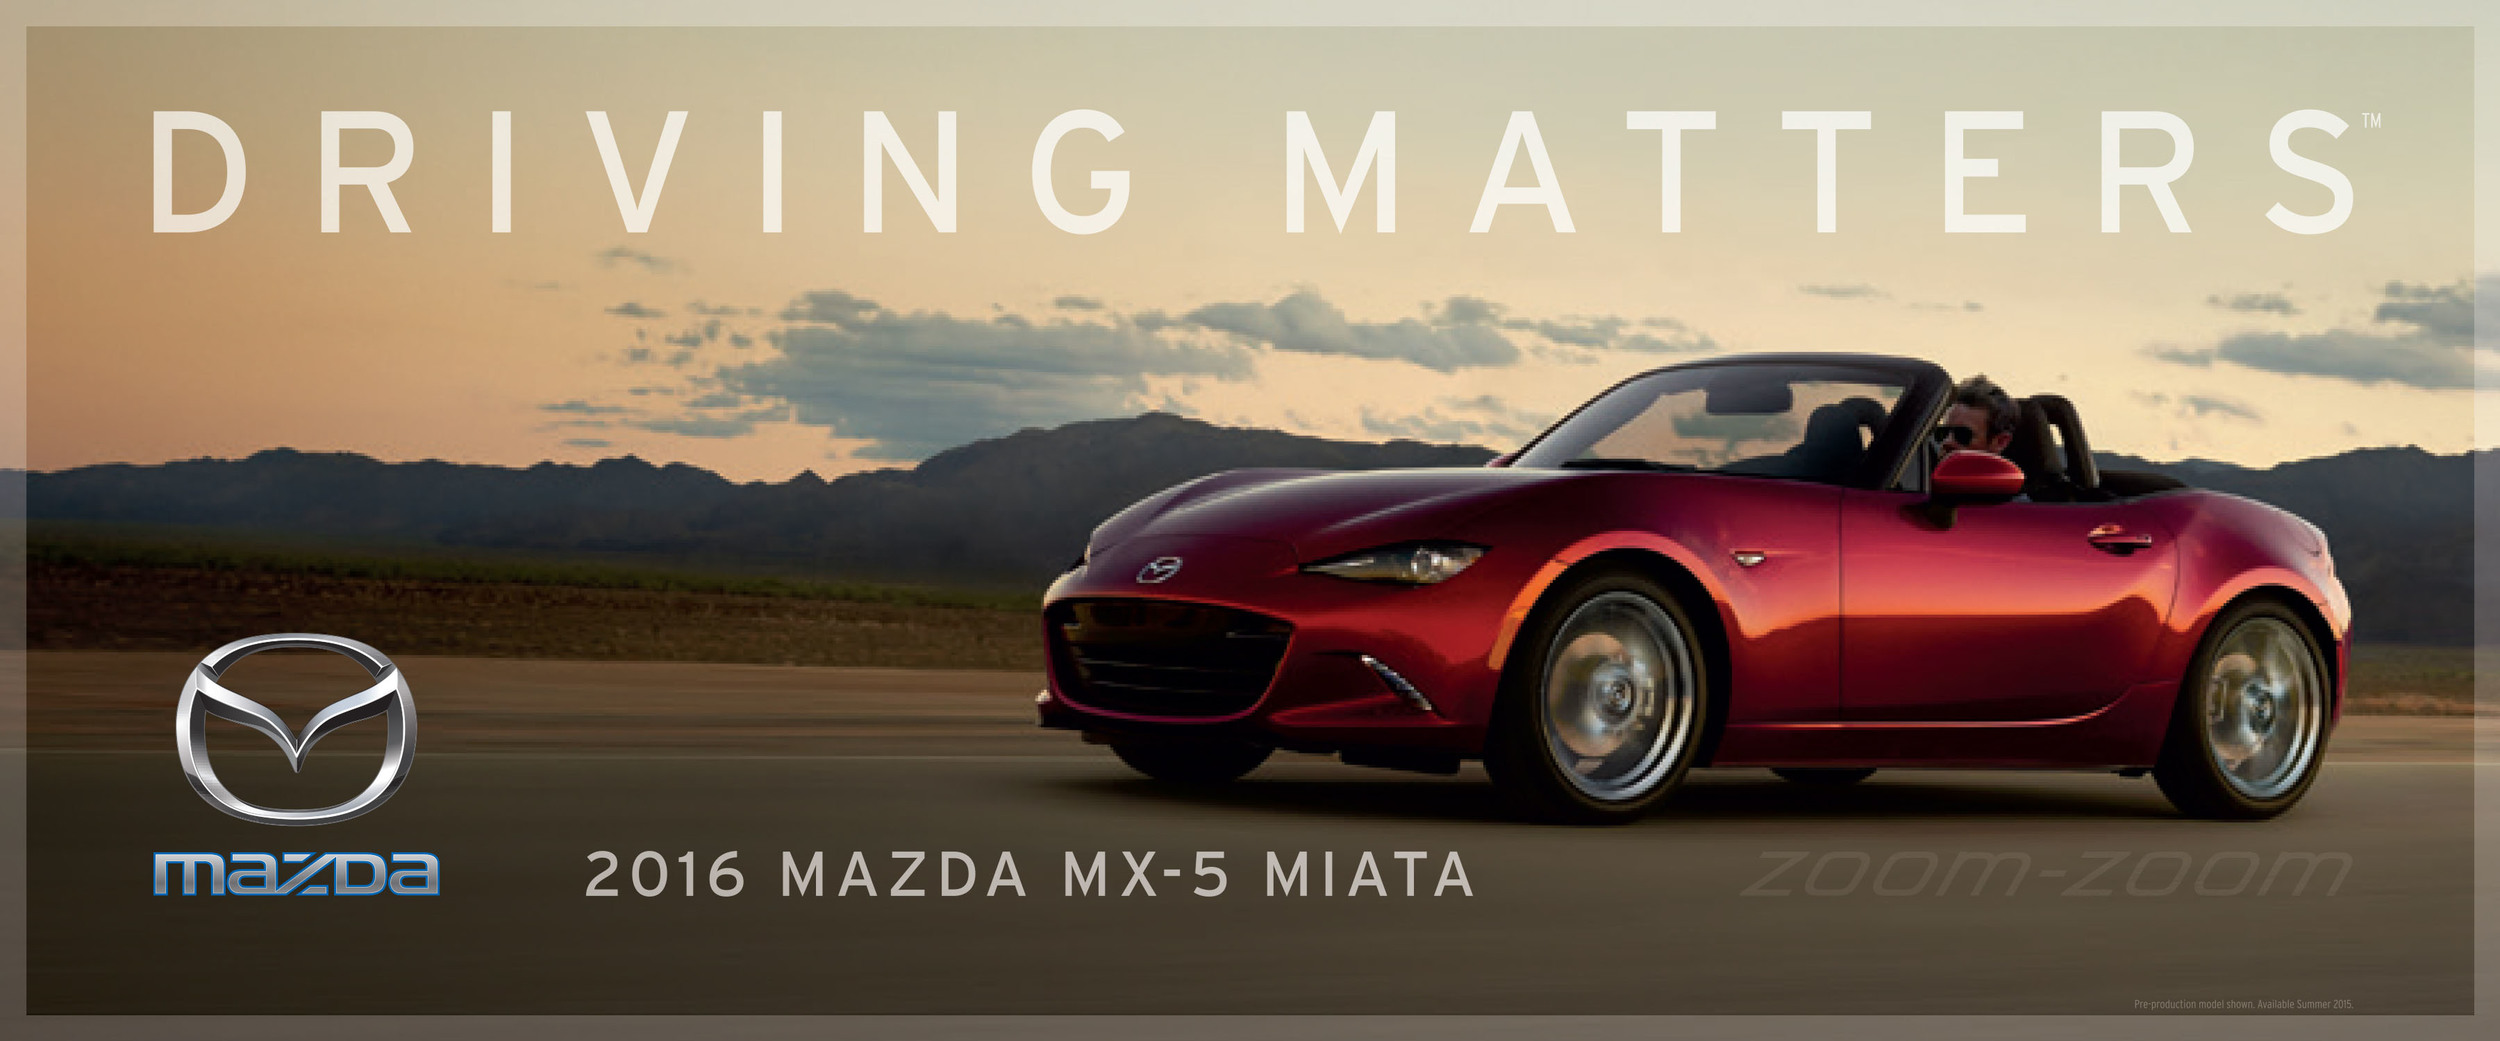 """Mazda Zooms In With New Company Slogan: """"Driving Matters"""